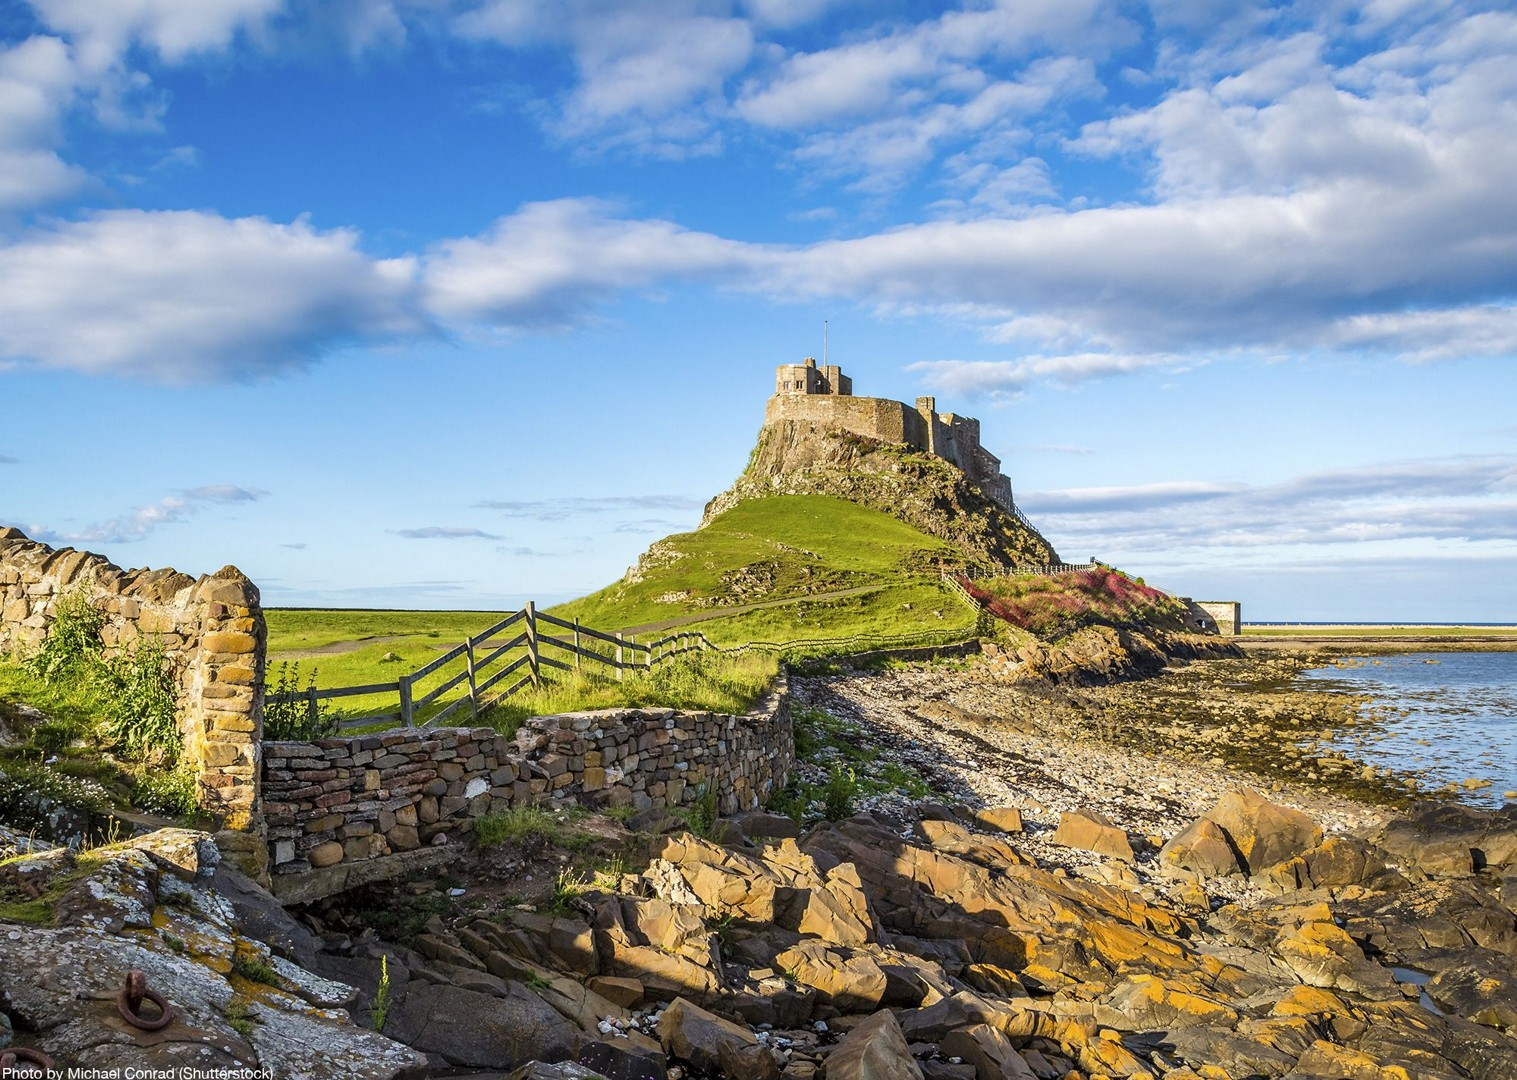 northumberland-coast-cycling-tour-local-castles-culture.jpg - UK - Northumberland Coast - 2 Days - Self-Guided Leisure Cycling Holiday - Leisure Cycling